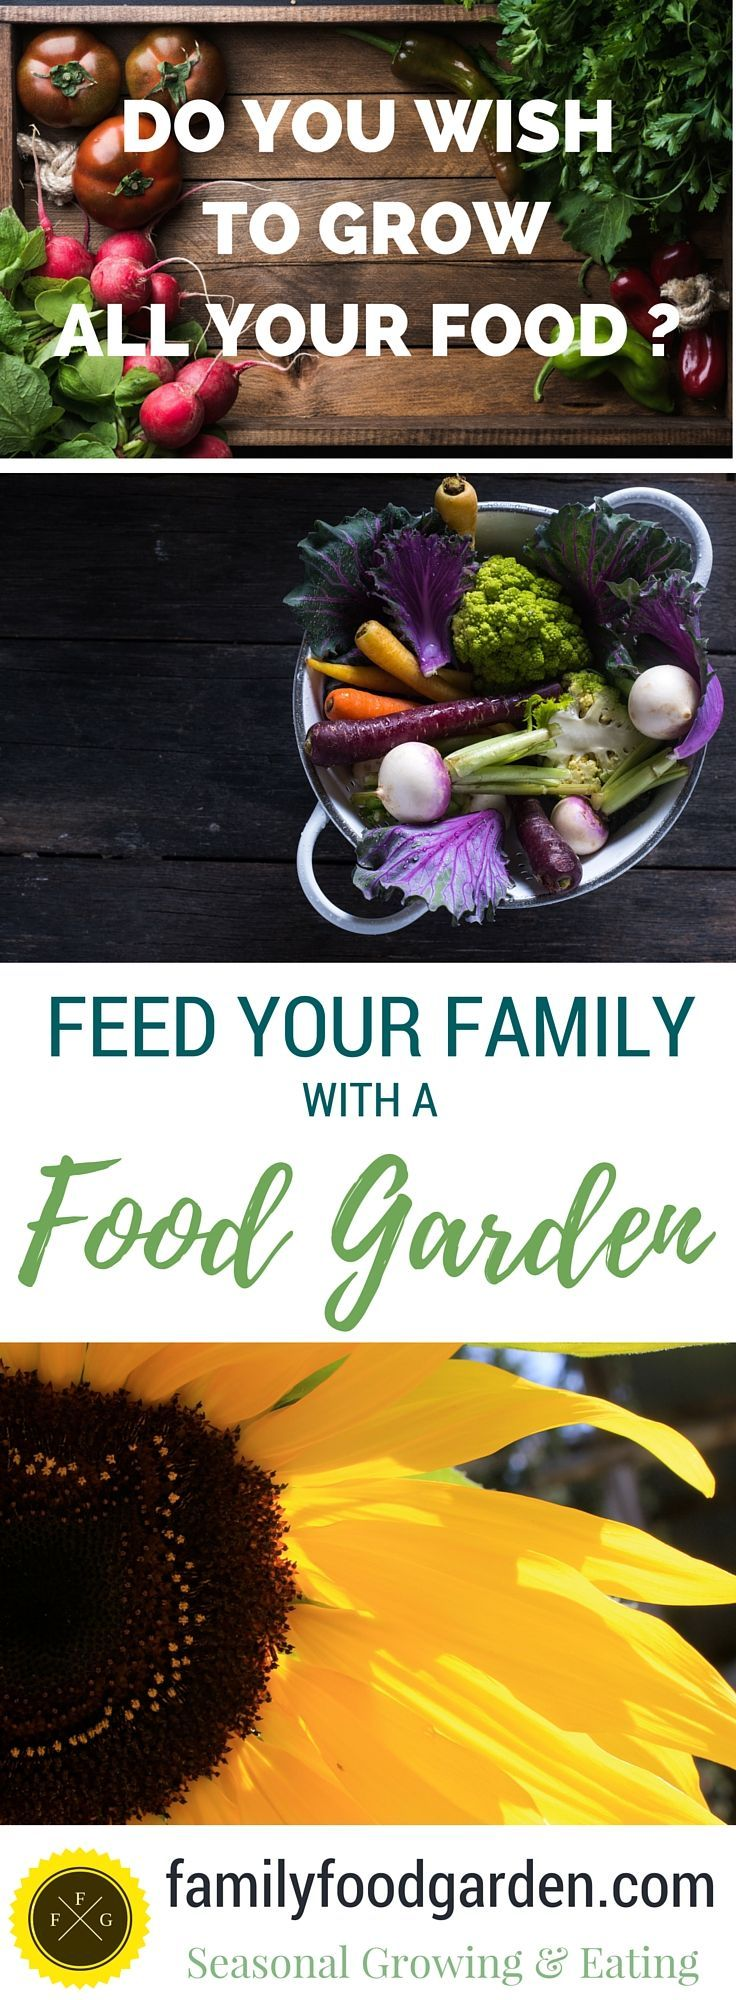 Food garden pictures - Feed Your Family With A Garden